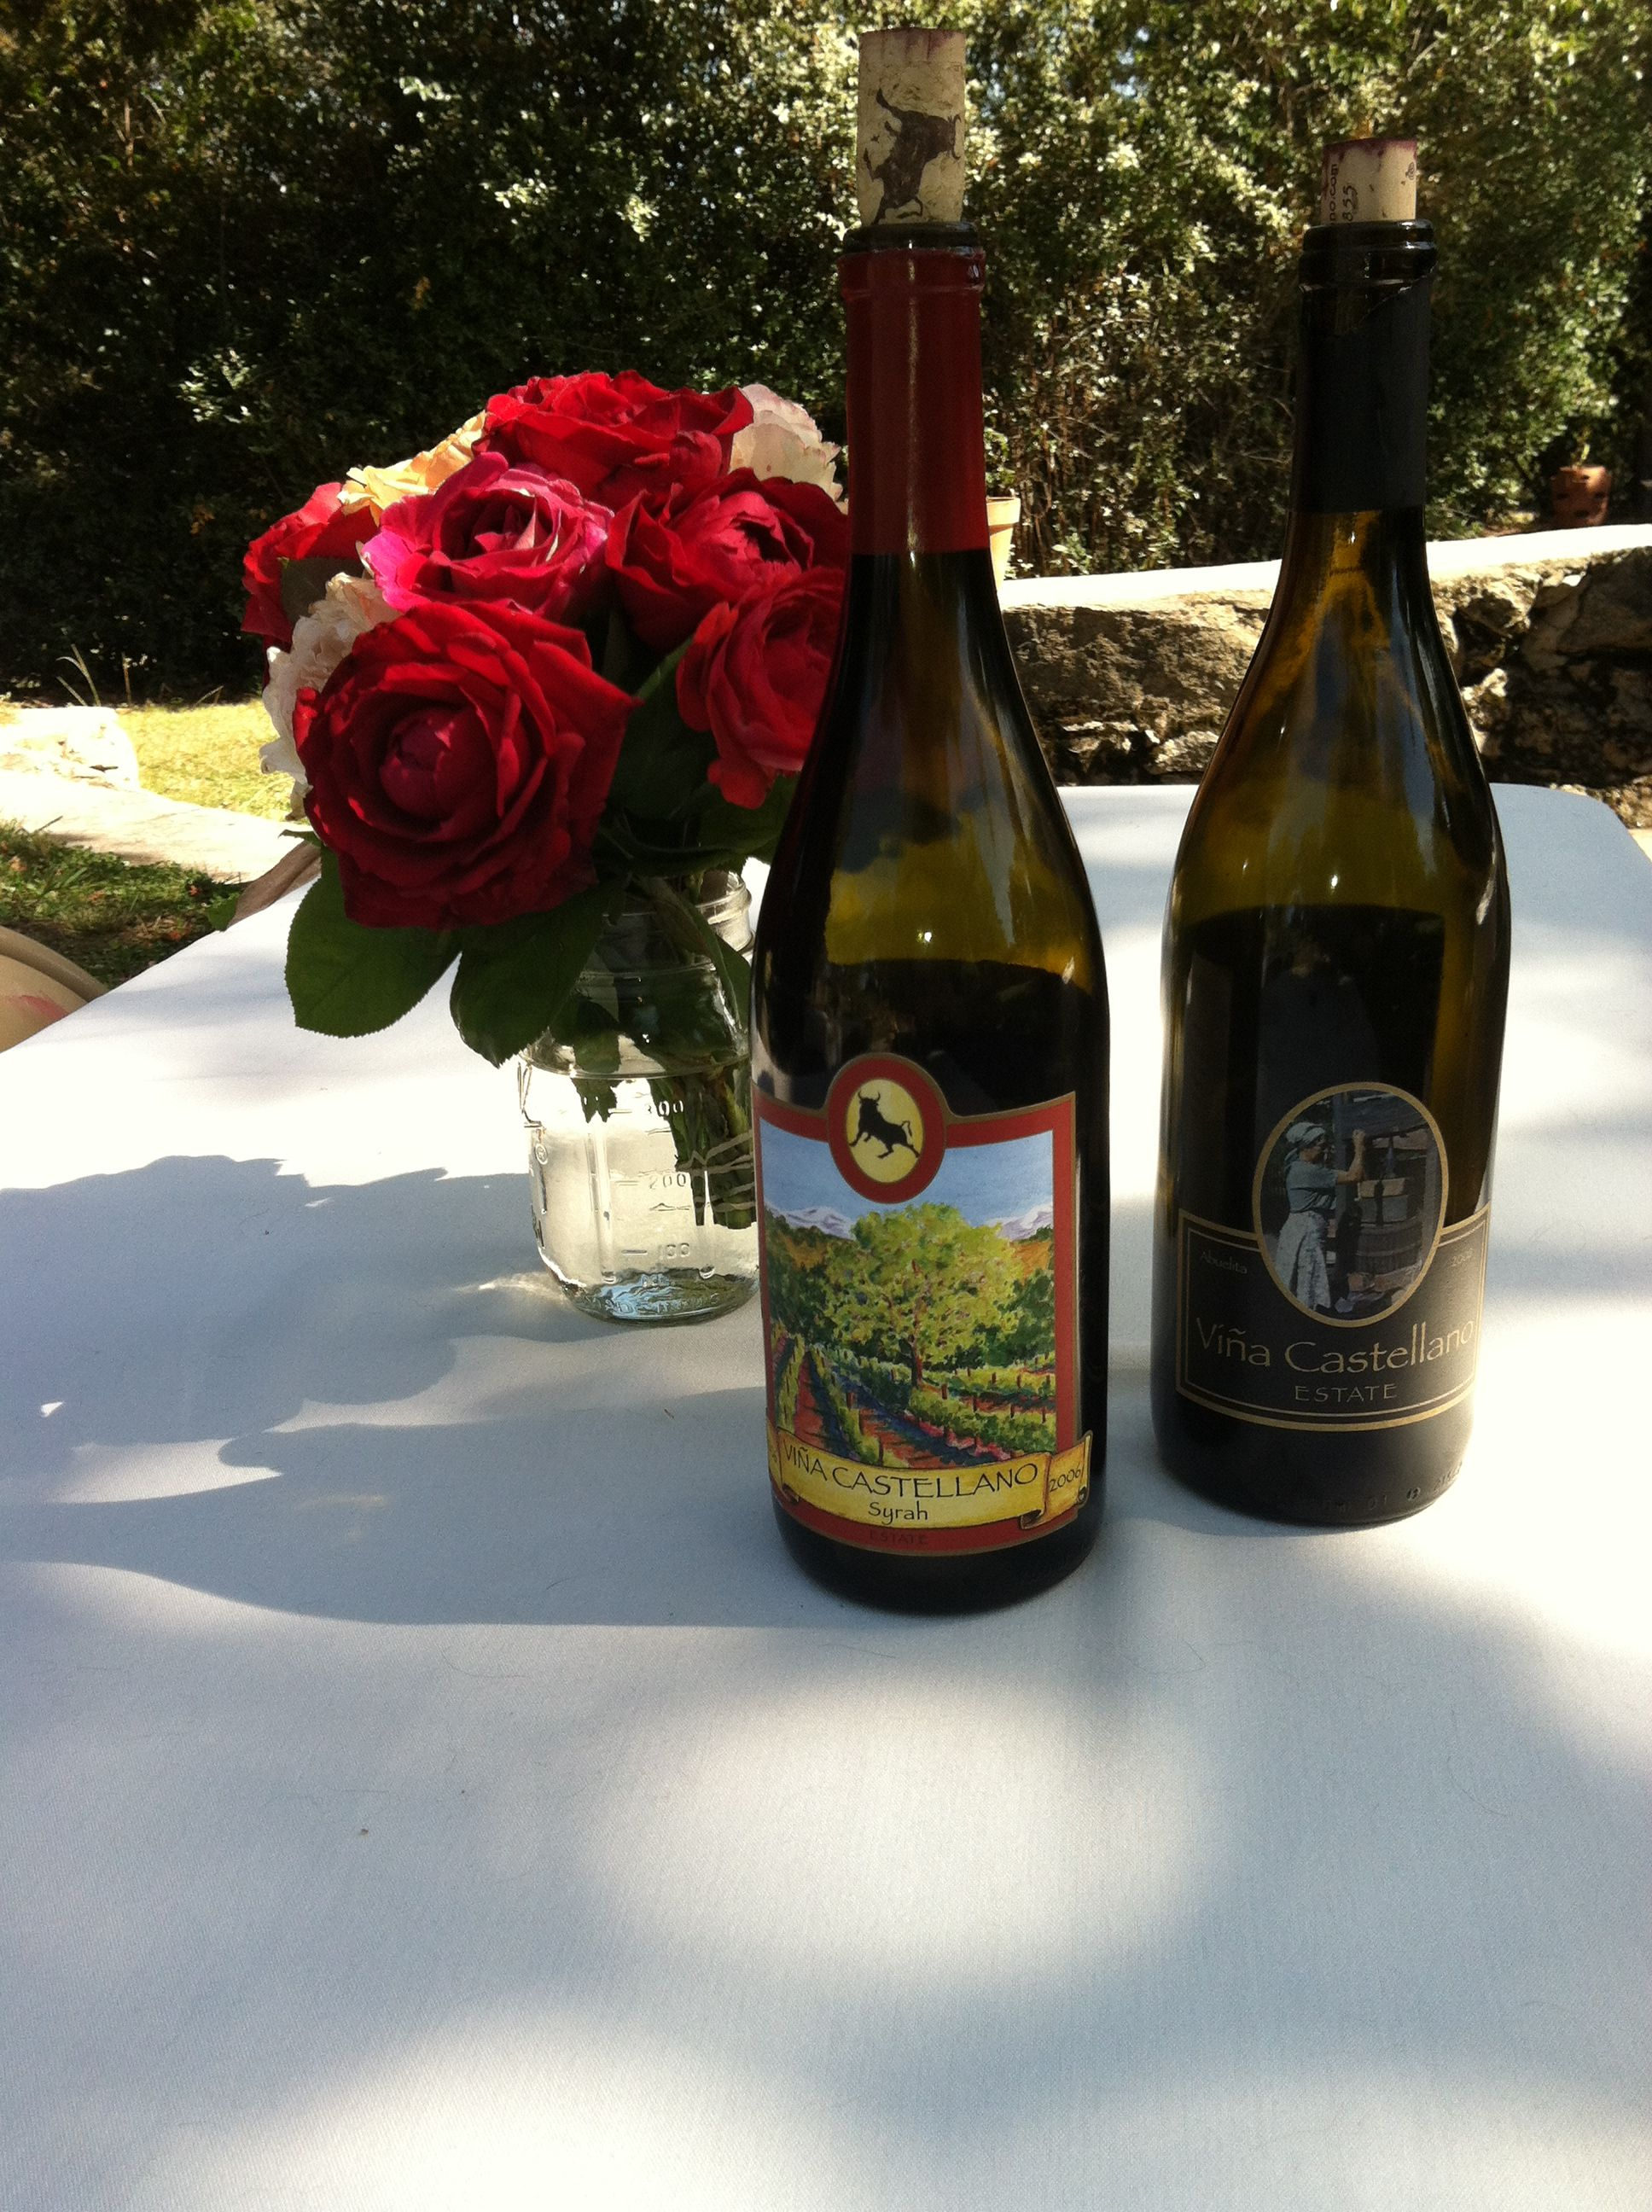 Placer County winery Vina Castellano provided the wine for our Celebrate PlacerGROWN Week Blogger Tour. Cheers!